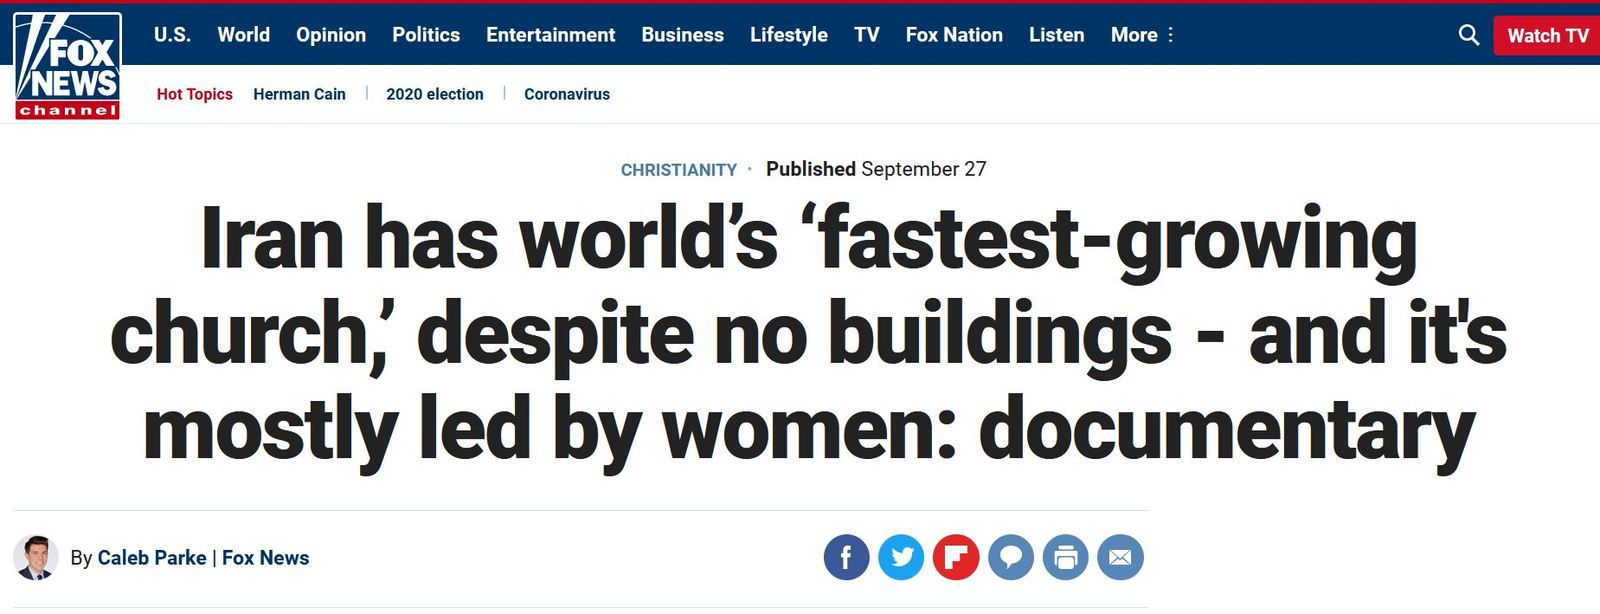 https://www.foxnews.com/faith-values/worlds-fastest-growing-church-women-documentary-film